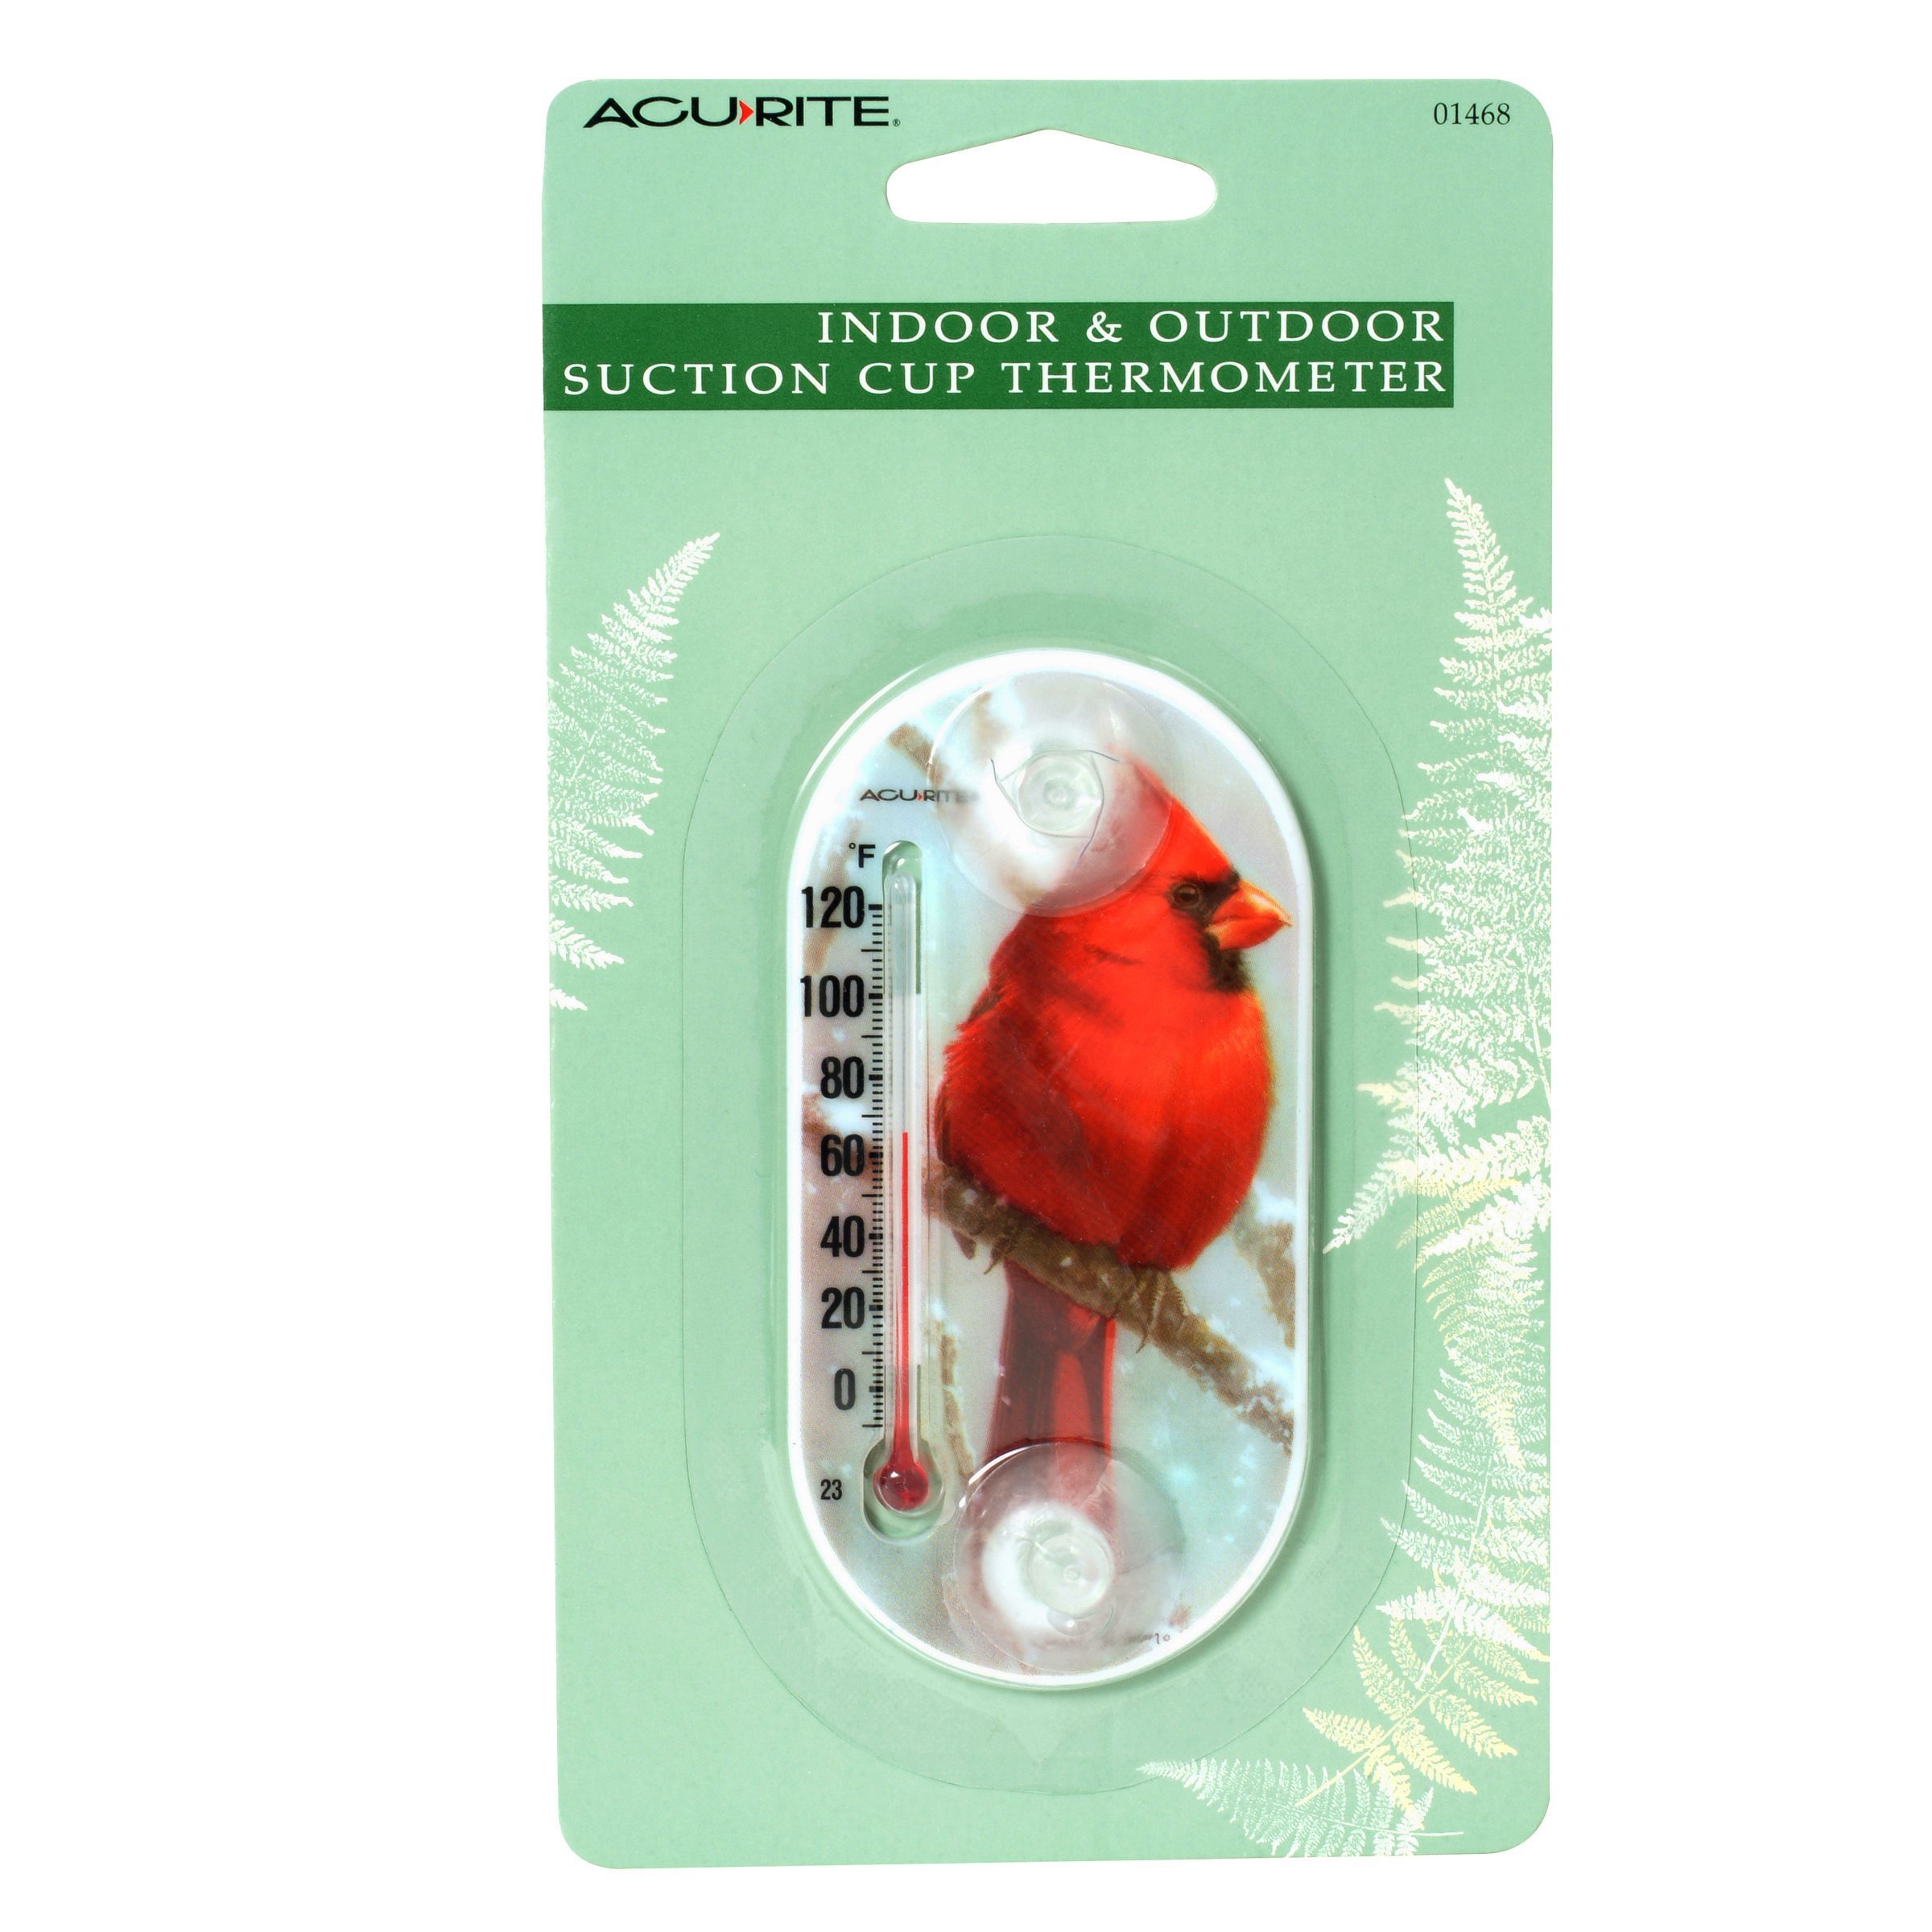 Suction Cup Thermometer - 8 inches PartNumber: 99900600ZR391000P MfgPartNumber: 5813611